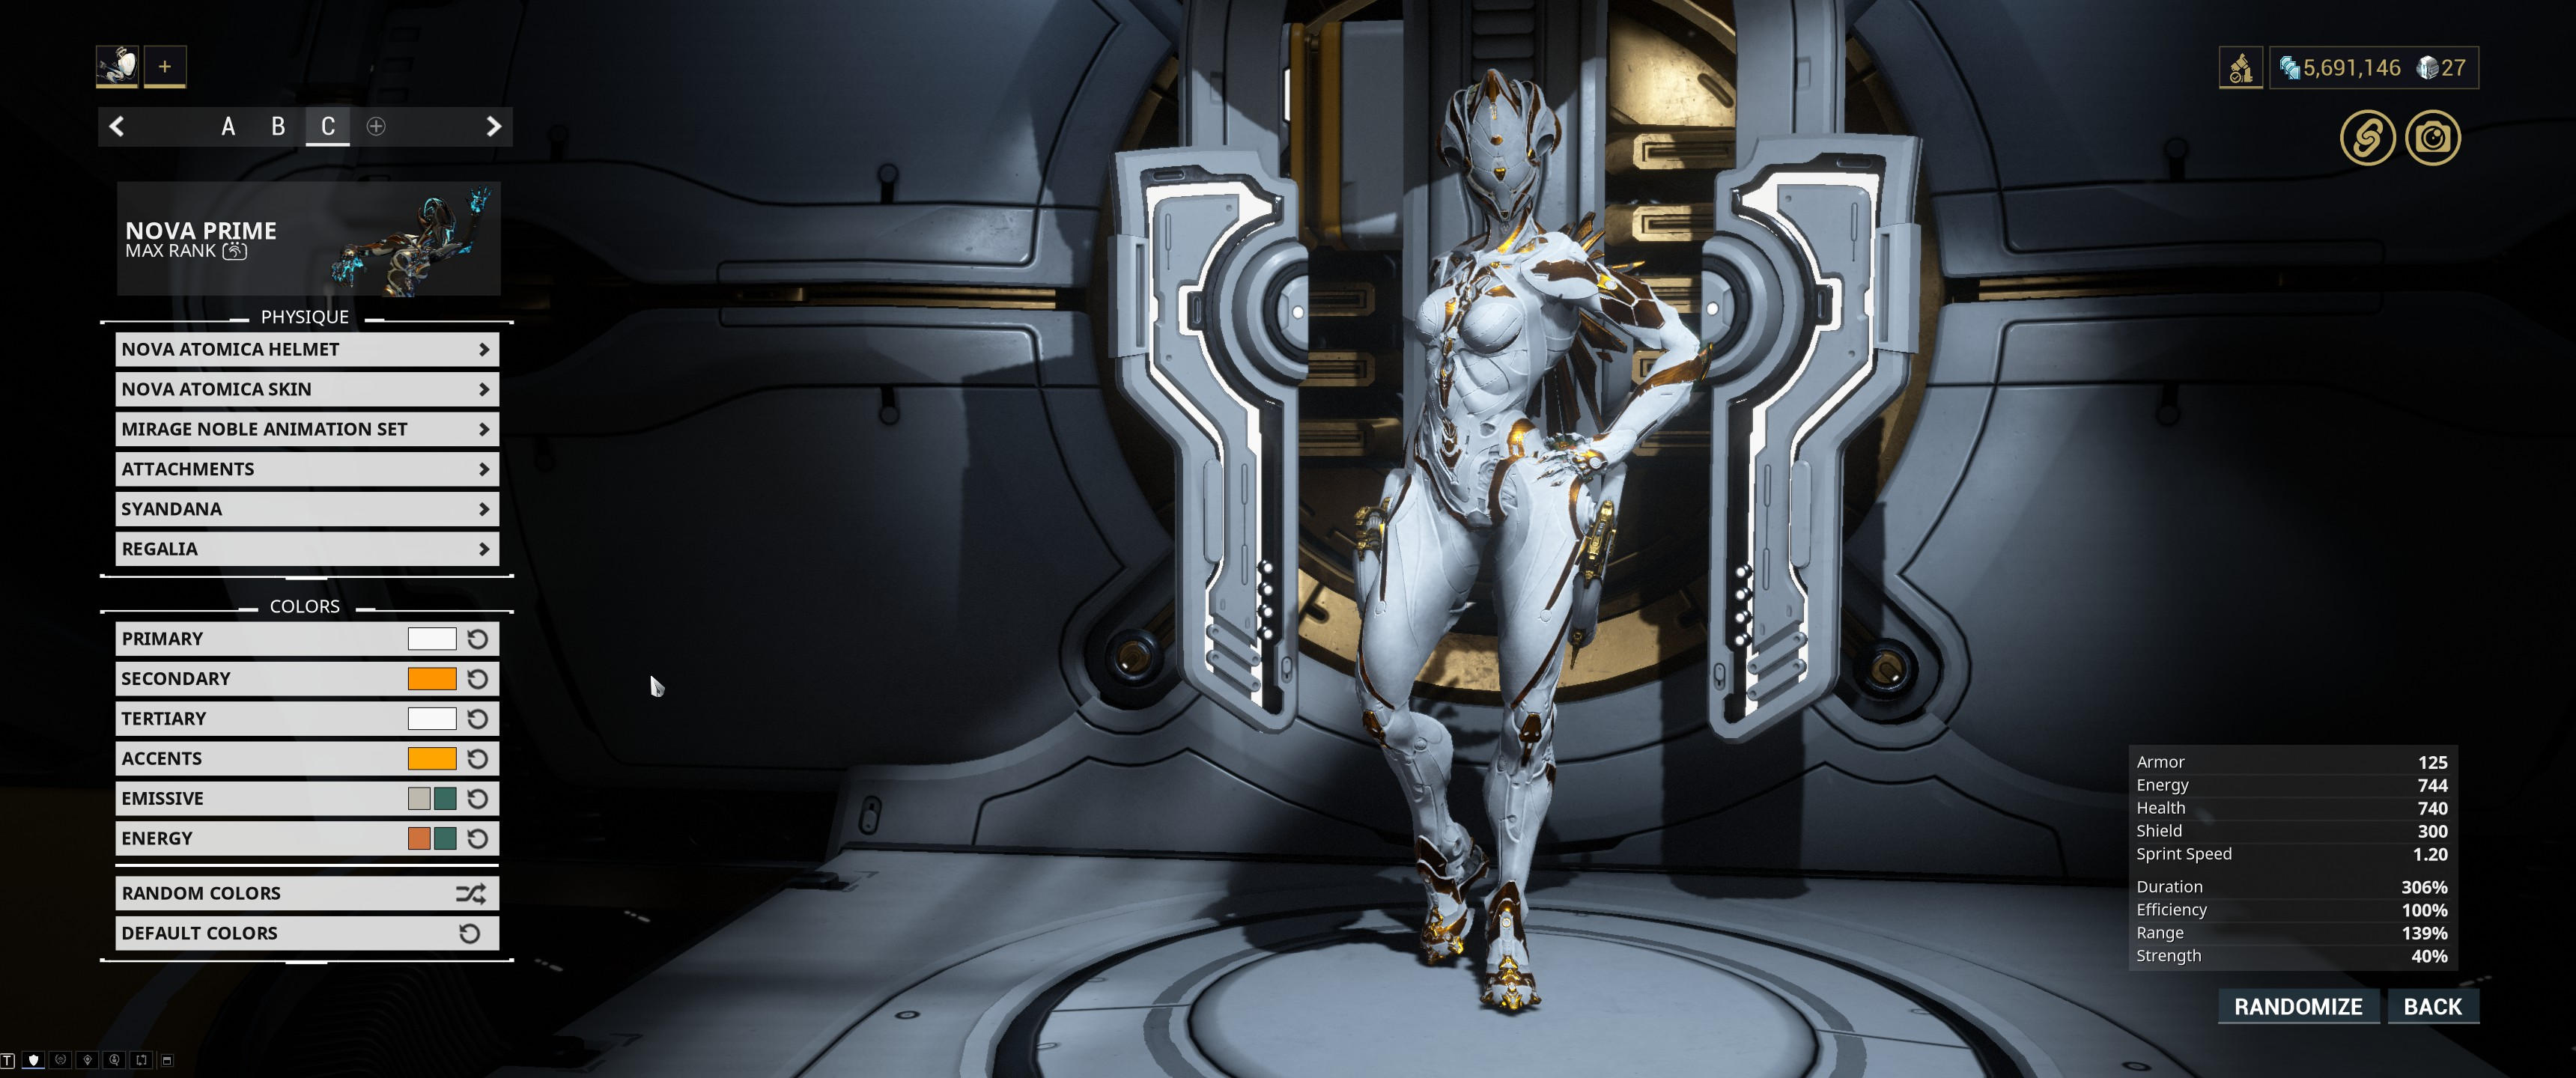 Nova Atomica Skin Colors Art Animation Warframe Forums A symbol of unity between unrelenting aggression and unwavering. nova atomica skin colors art